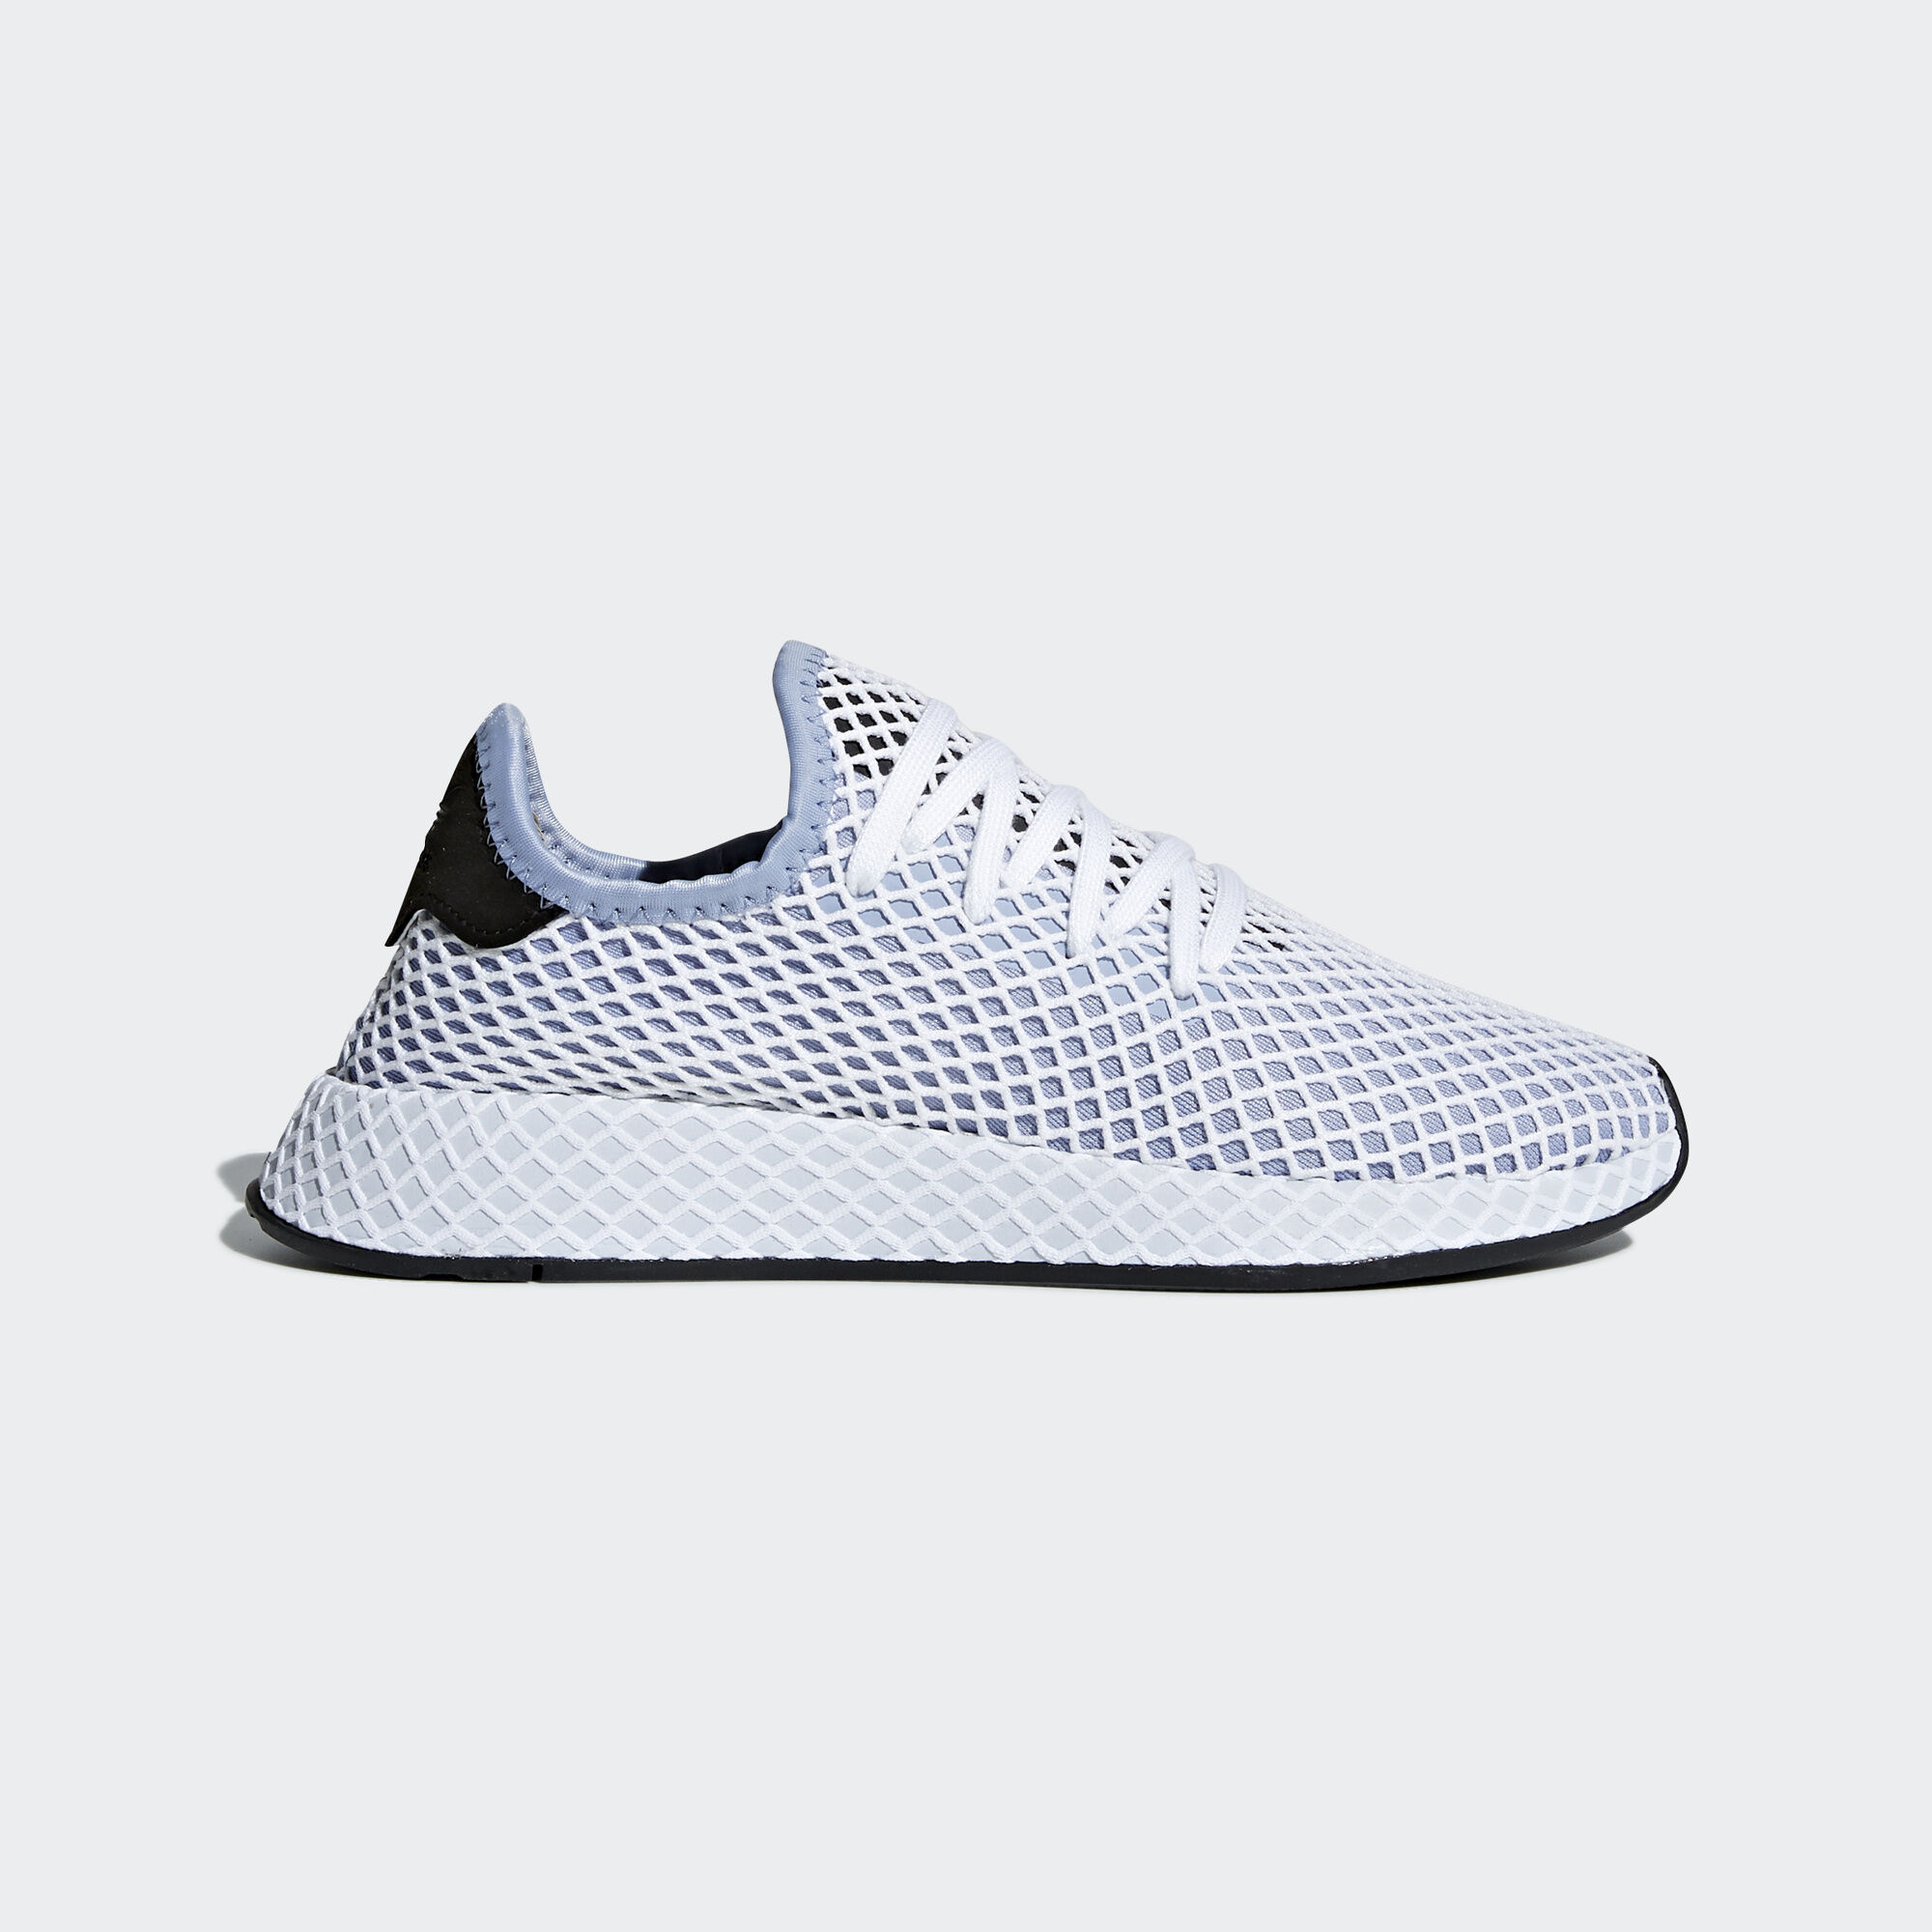 hot sale online 08c82 4ba55 SCARPE DONNA SNEAKERS ADIDAS ORIGINALS DEERUPT RUNNER CQ2912 -  mainstreetblytheville.org